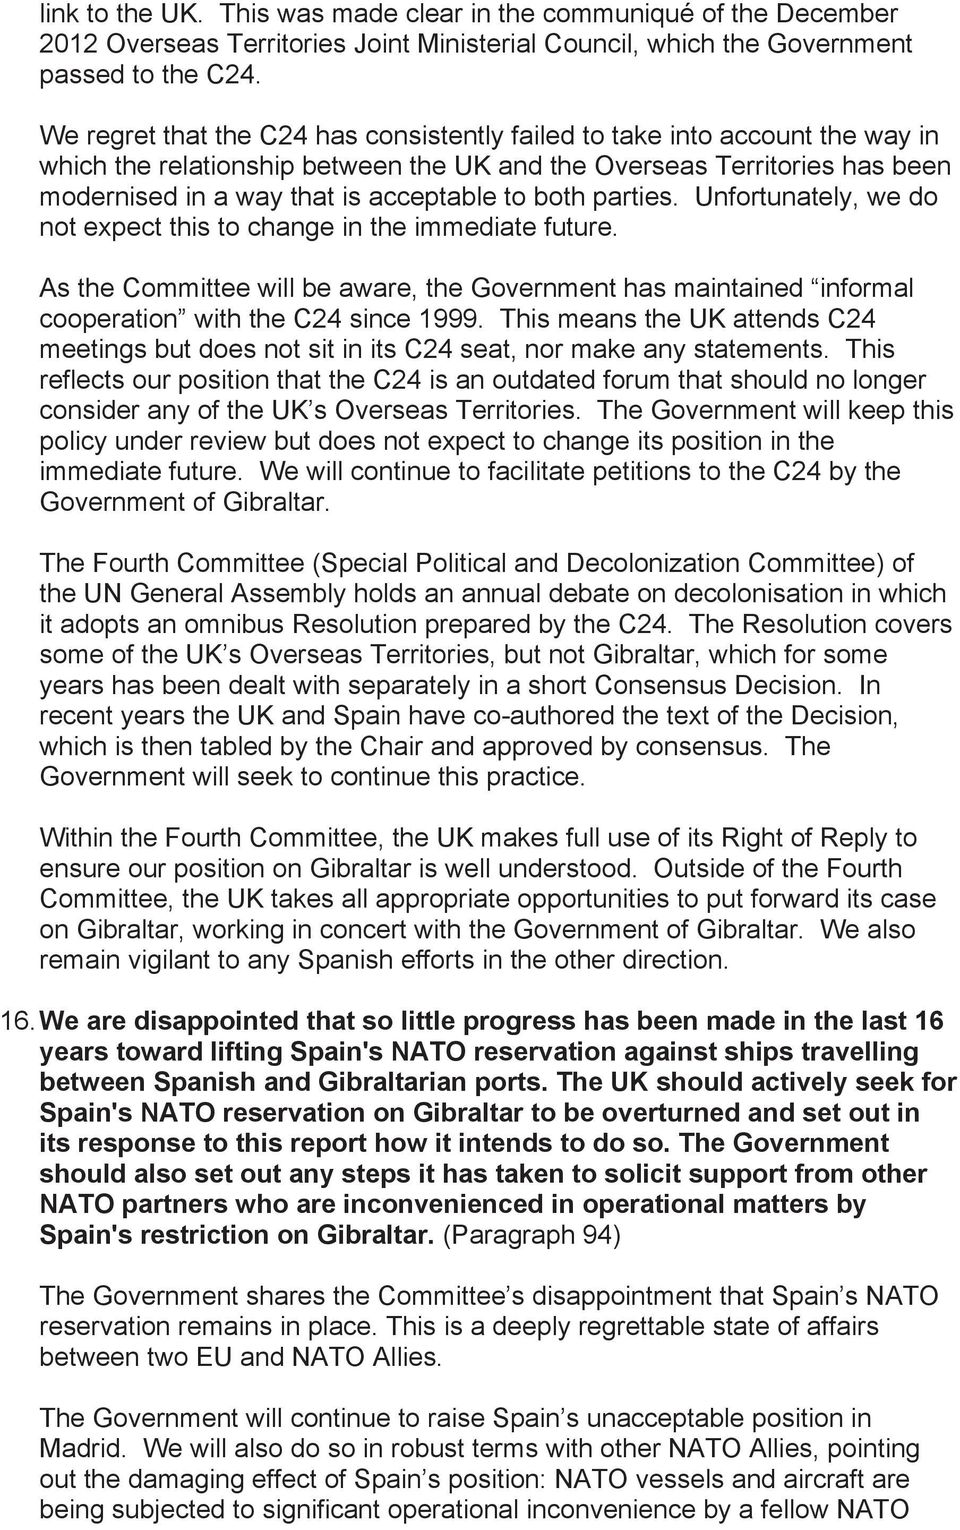 both parties. Unfortunately, we do not expect this to change in the immediate future. As the Committee will be aware, the Government has maintained informal cooperation with the C24 since 1999.